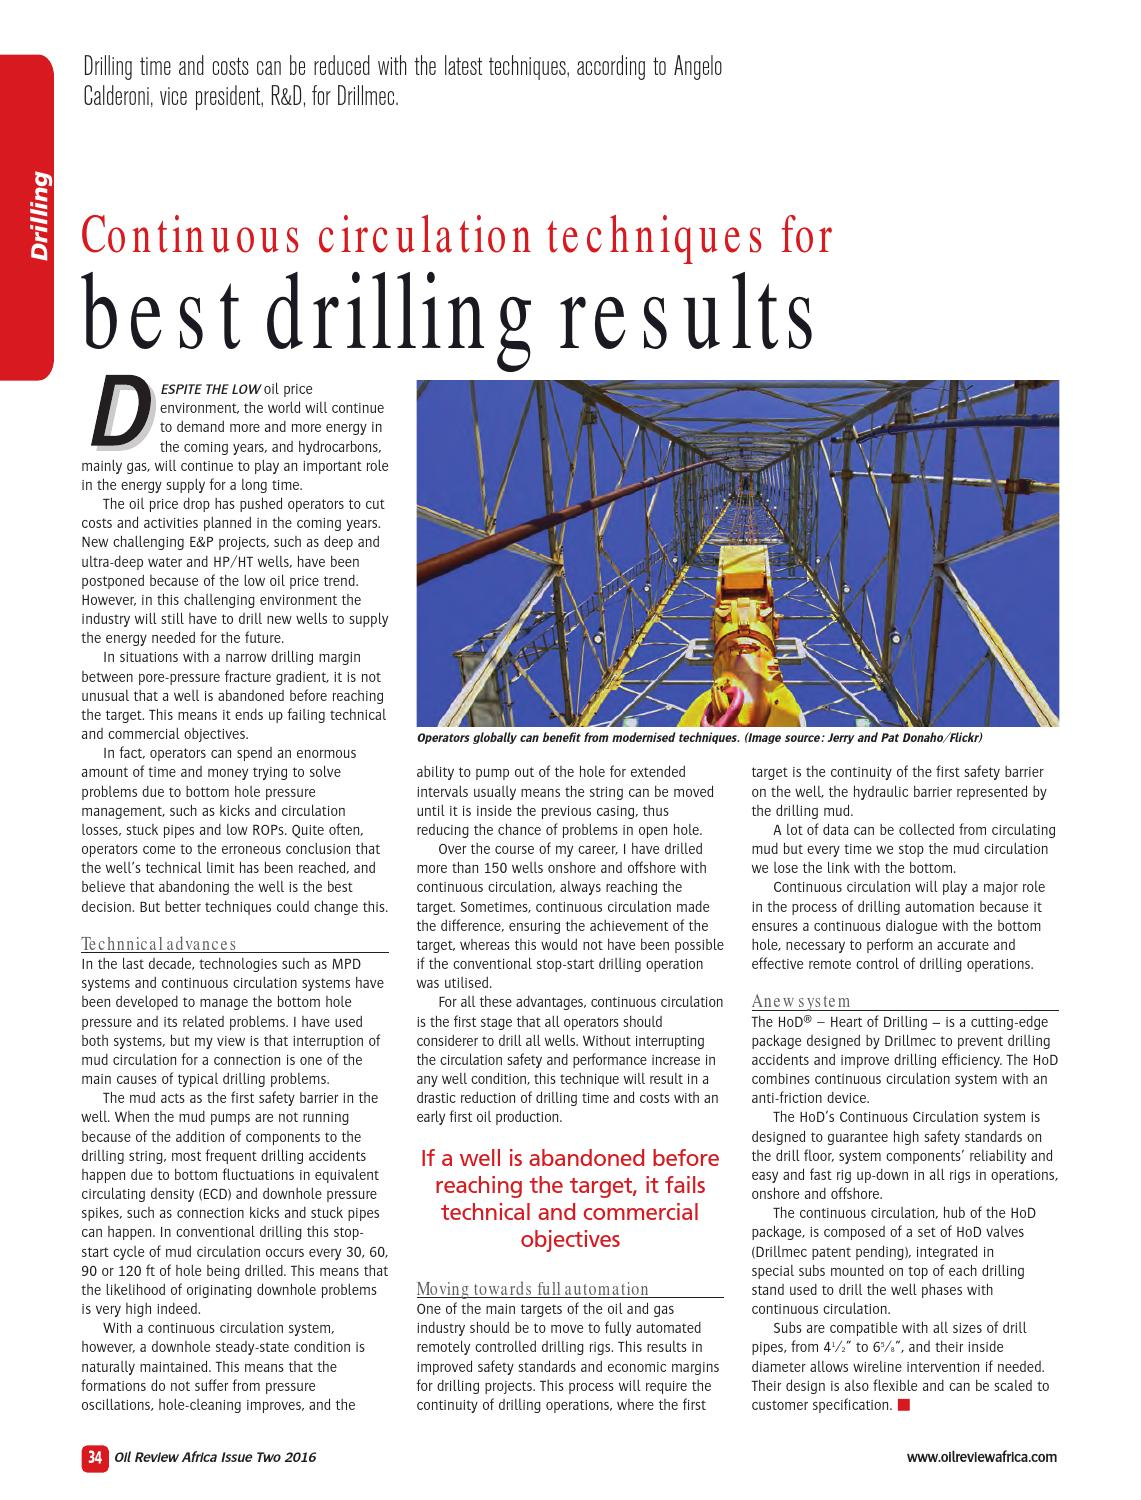 Oil Review Africa 2 2016